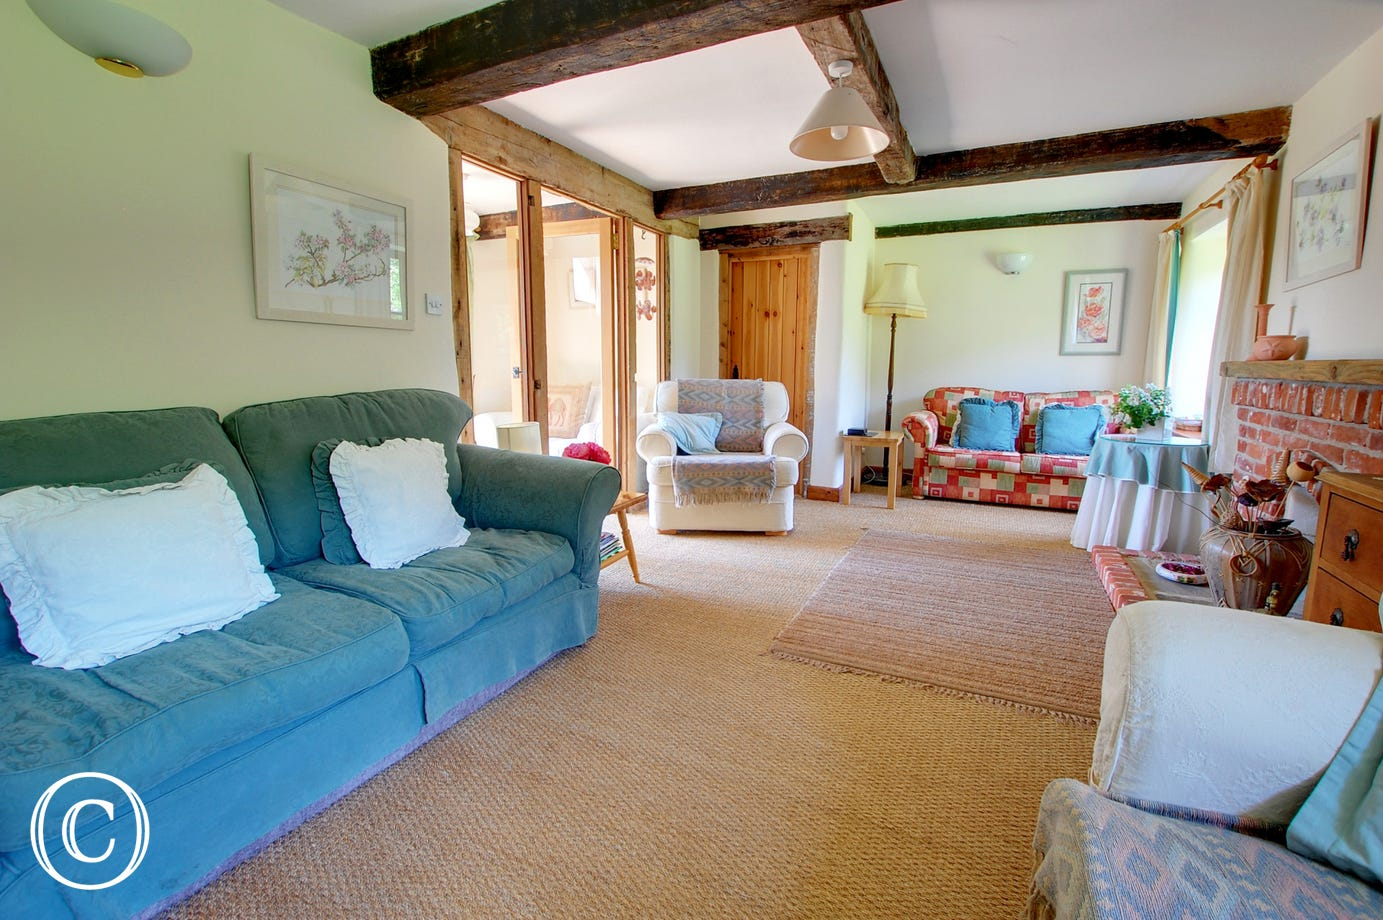 Attractively furnished with comfortable seating and full of original features, a lovely family space